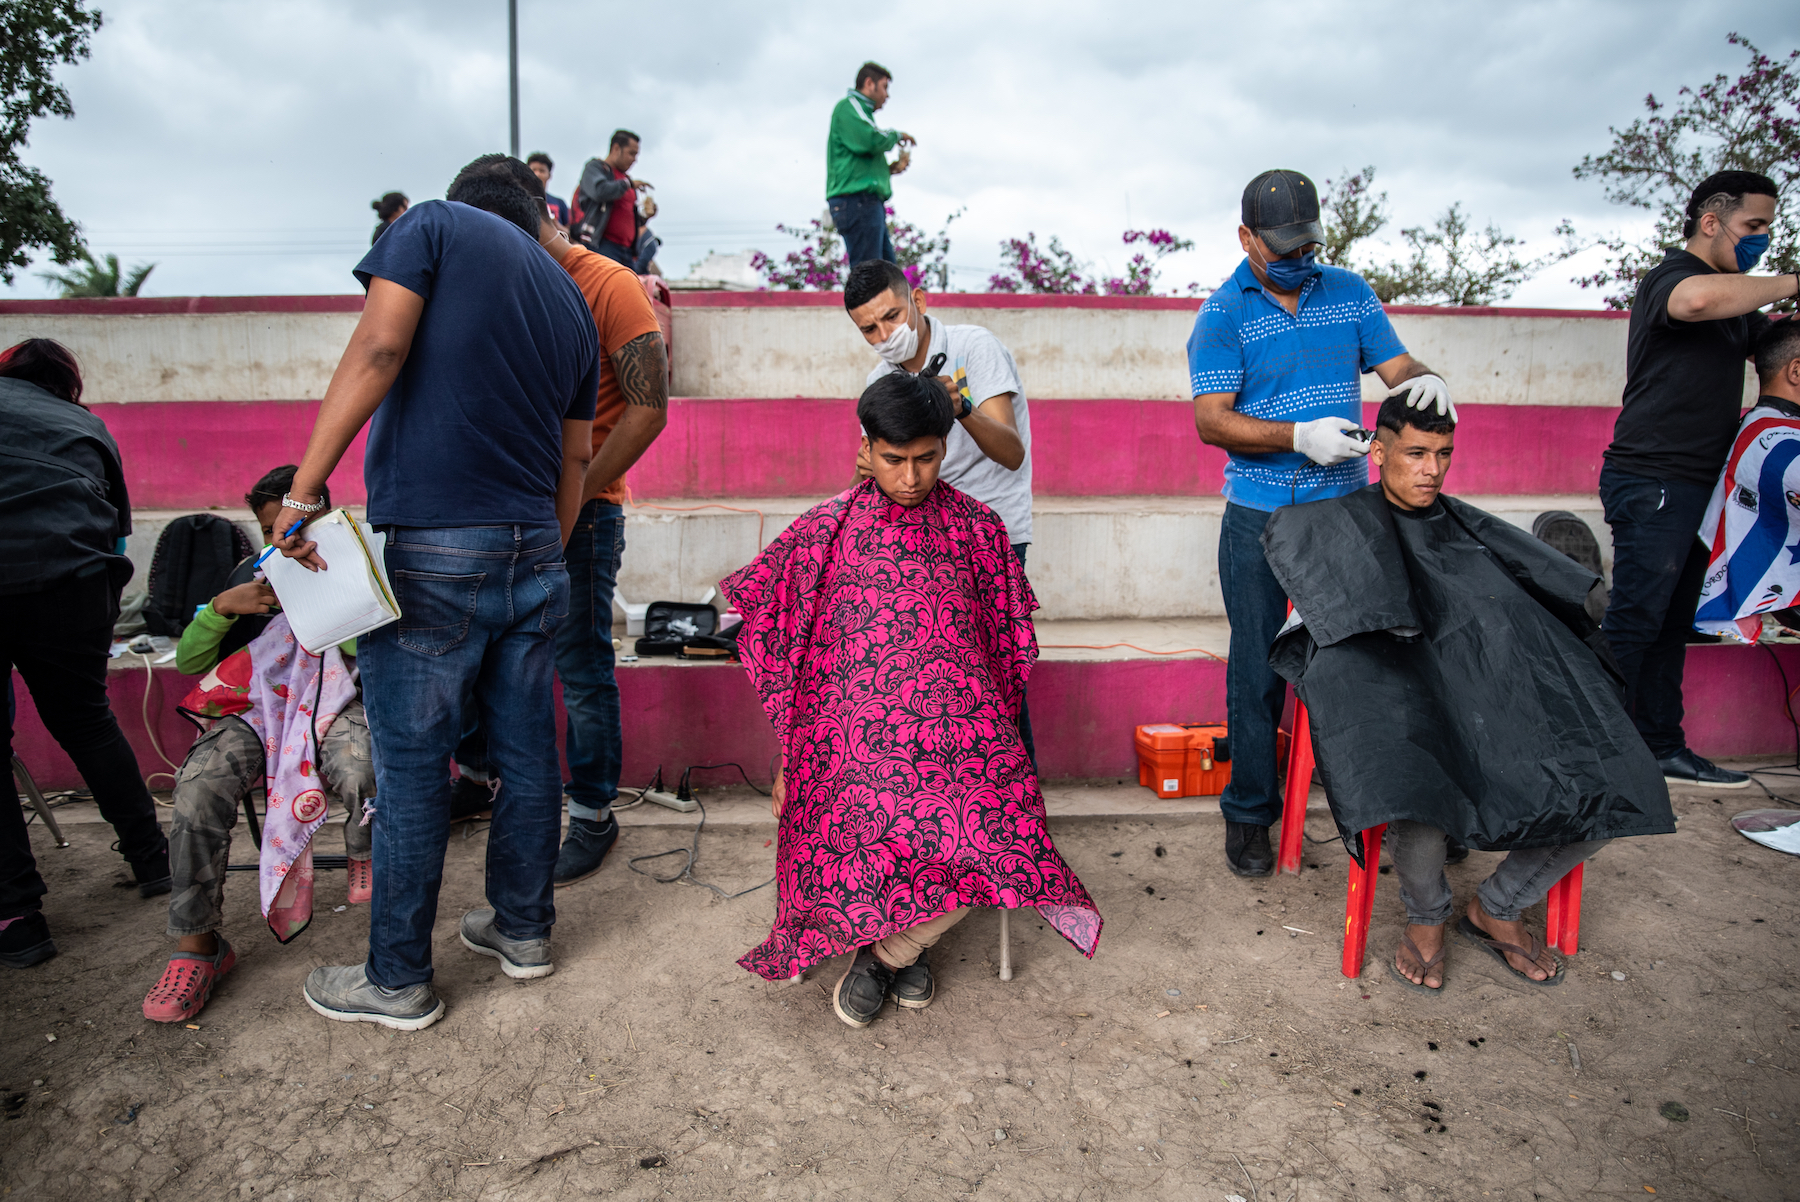 A group of barber shop students offer free haircuts to migrants staying at the camp in Matamoros.